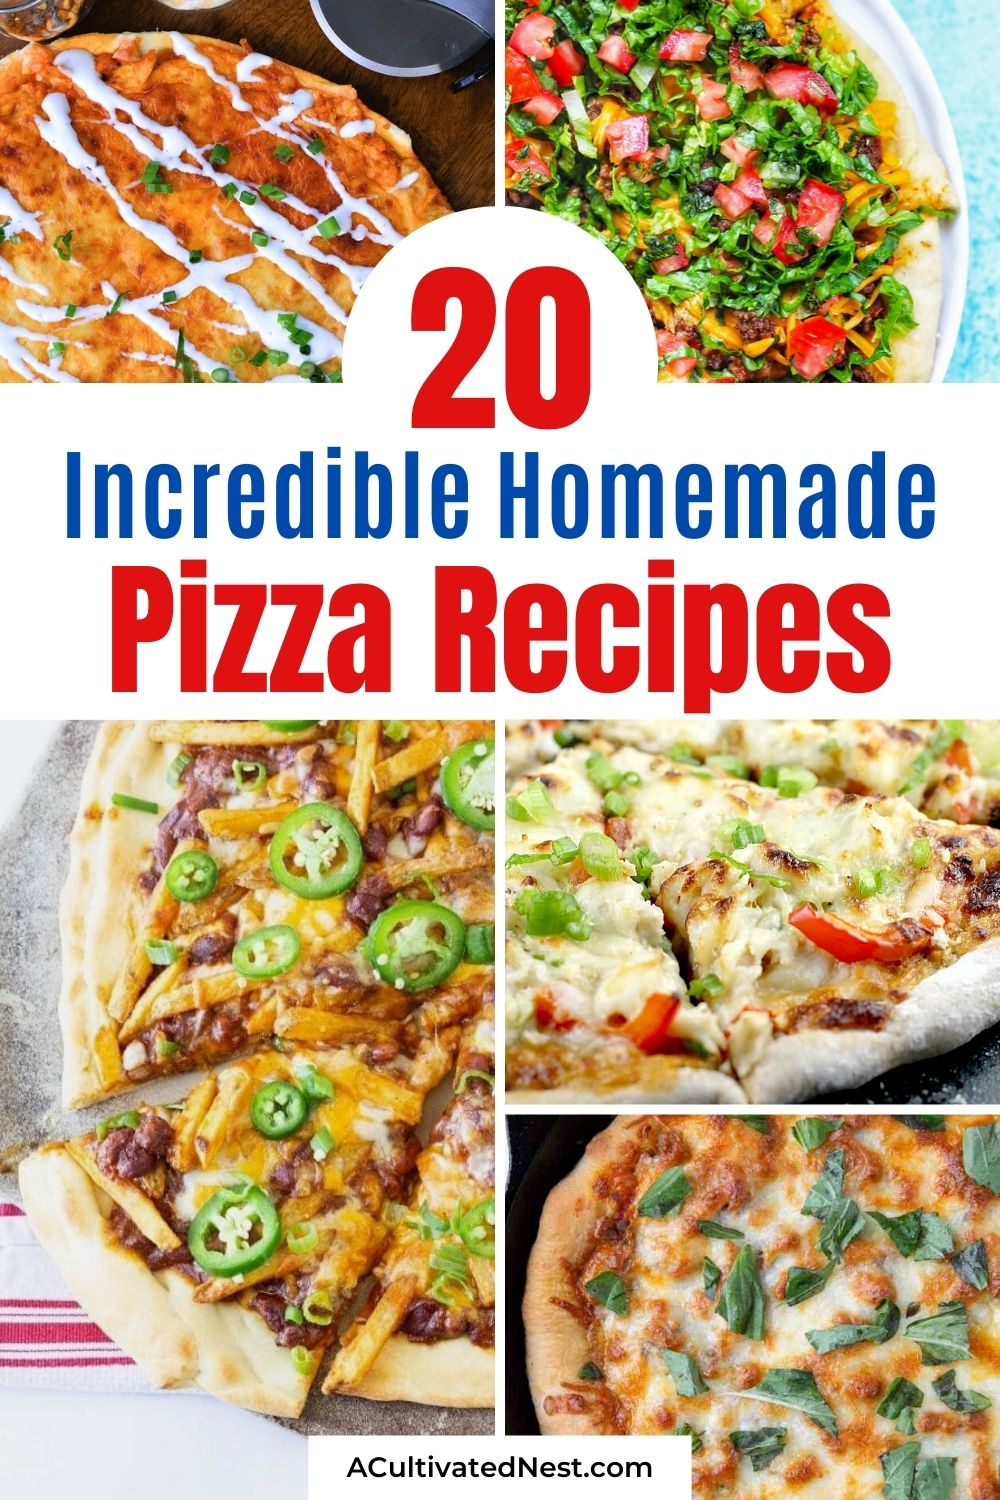 20 Incredible Homemade Pizza Recipes- For a delicious and easy meal, you have try some of these 20 incredible homemade pizza recipes! They're so much better than take-out! | how to make pizza from scratch, #pizzaRecipes #recipe #pizza #homemadePizza #ACultivatedNest